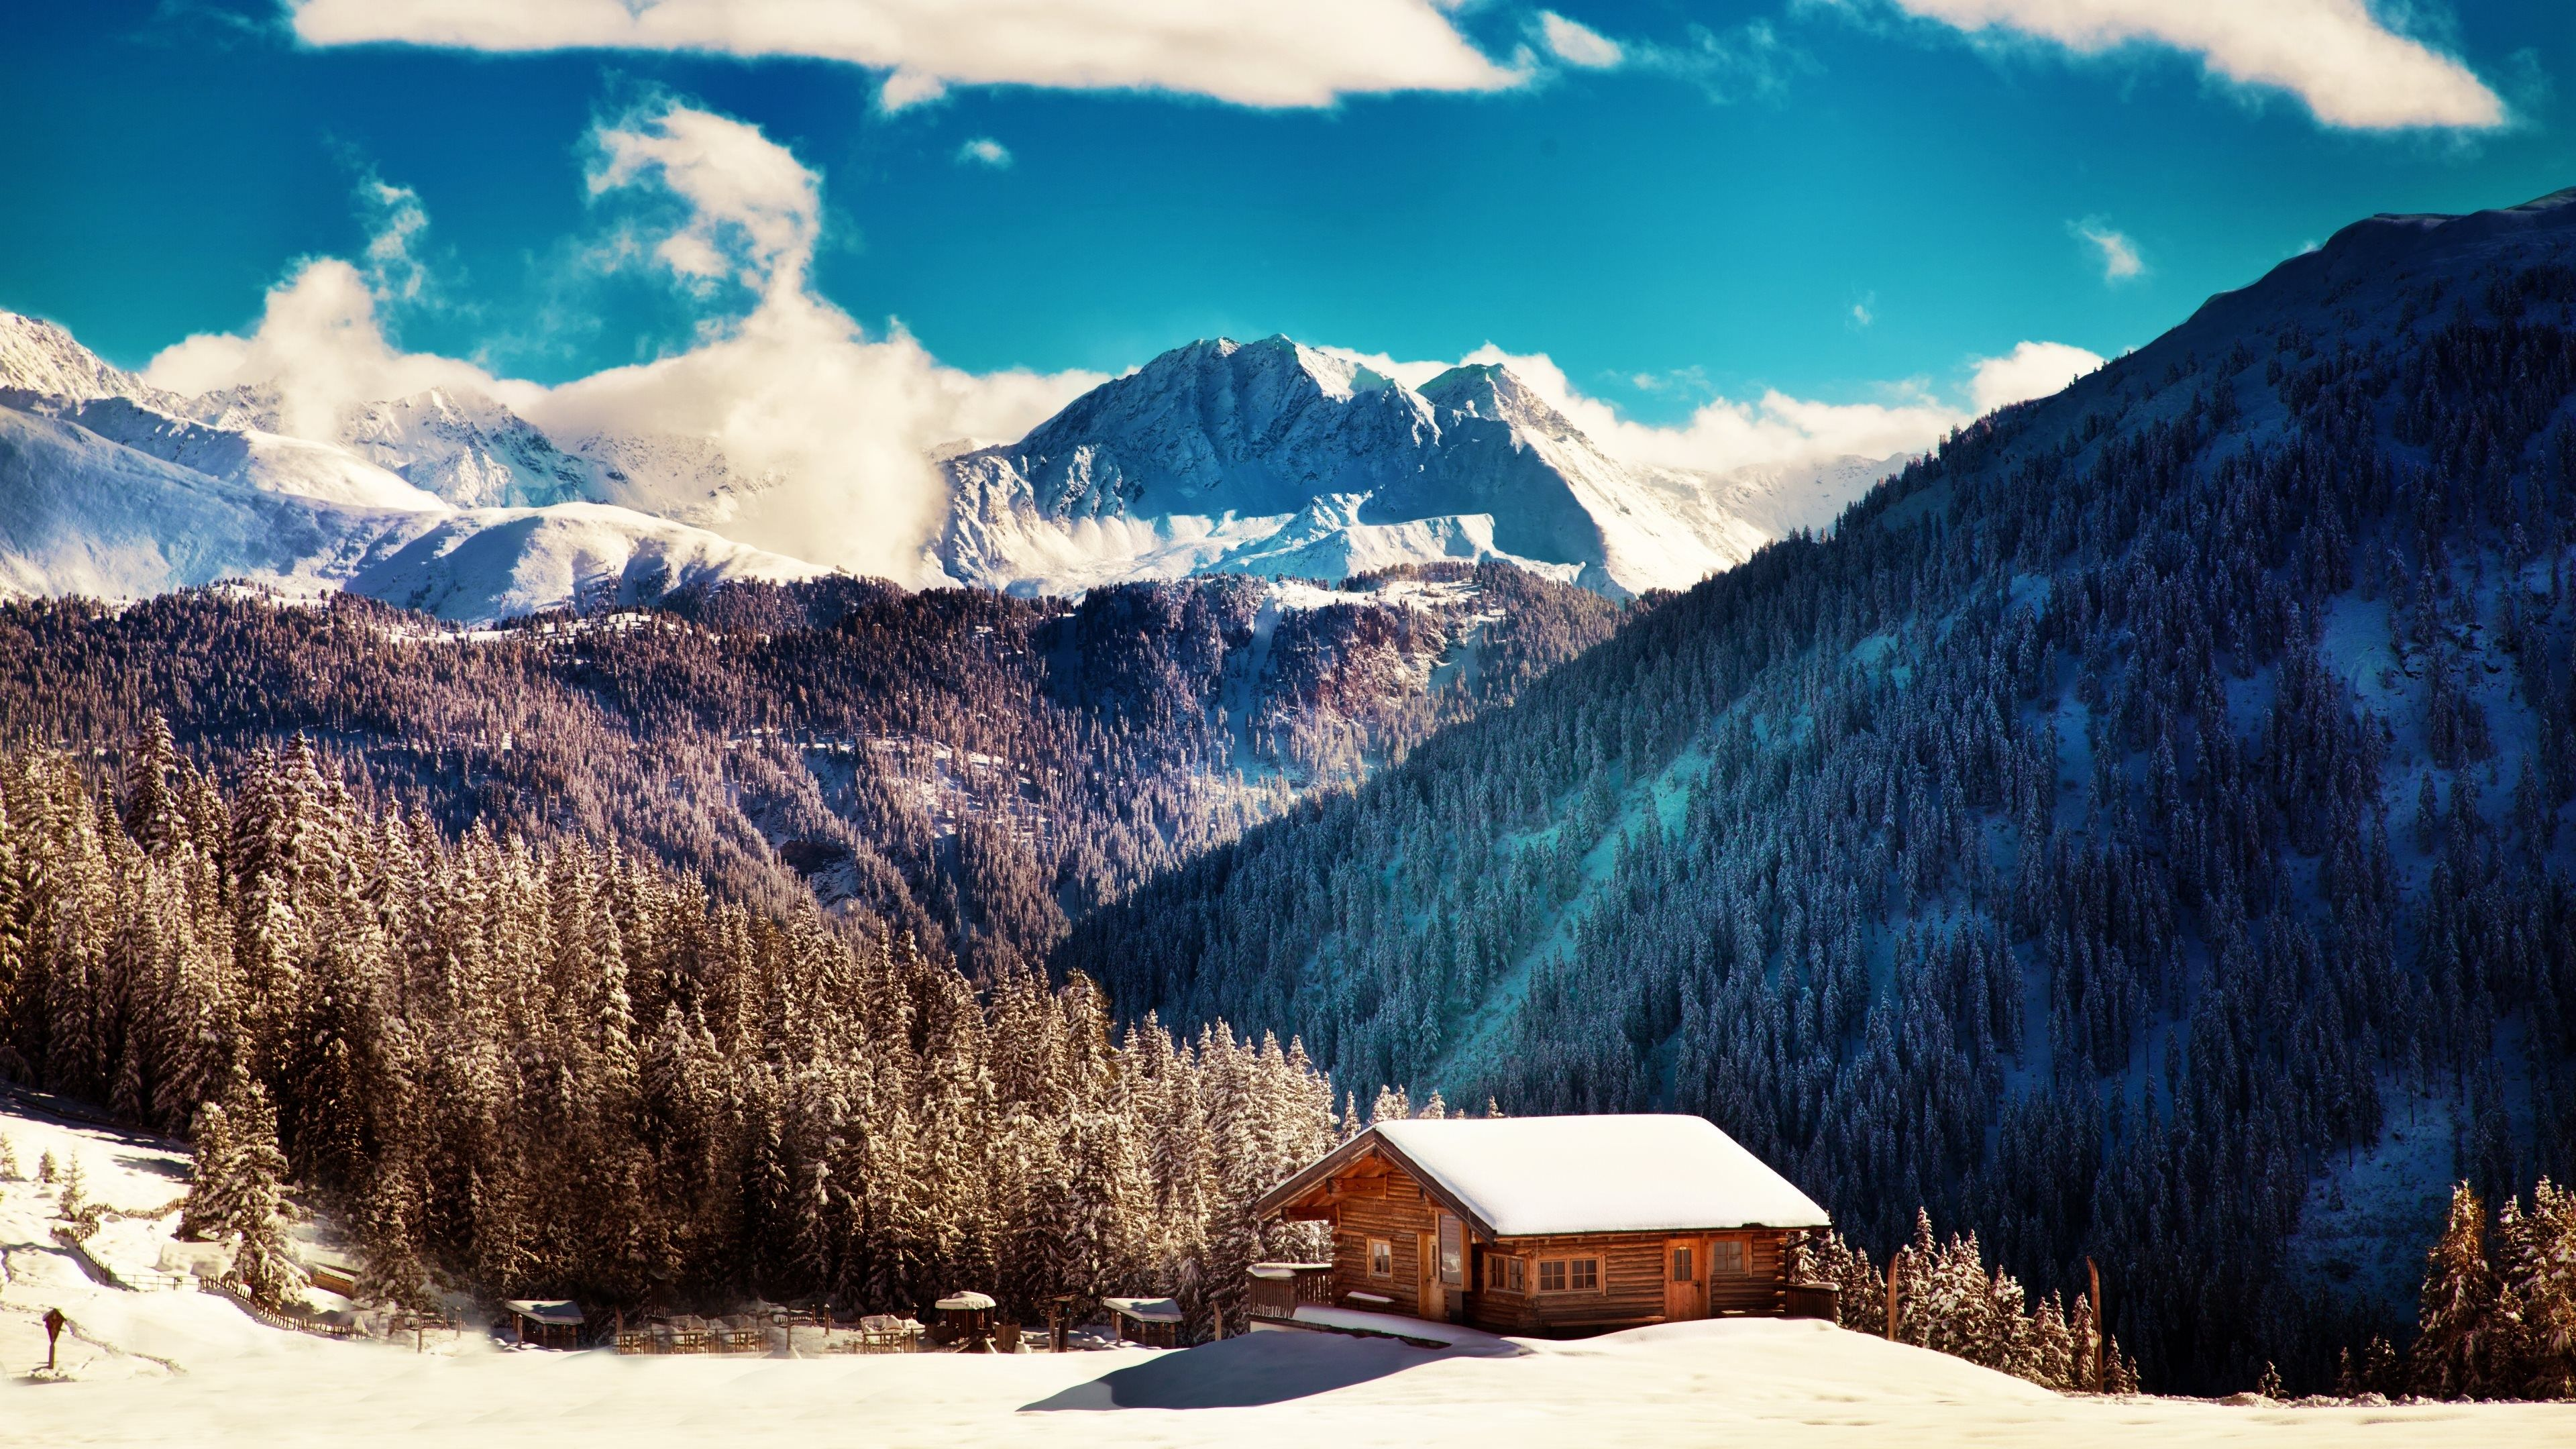 Free Awesome Cabin Backround 1937 Kb Cadman Wilkinson Landscape Wallpaper Winter Wallpaper Nature Wallpaper